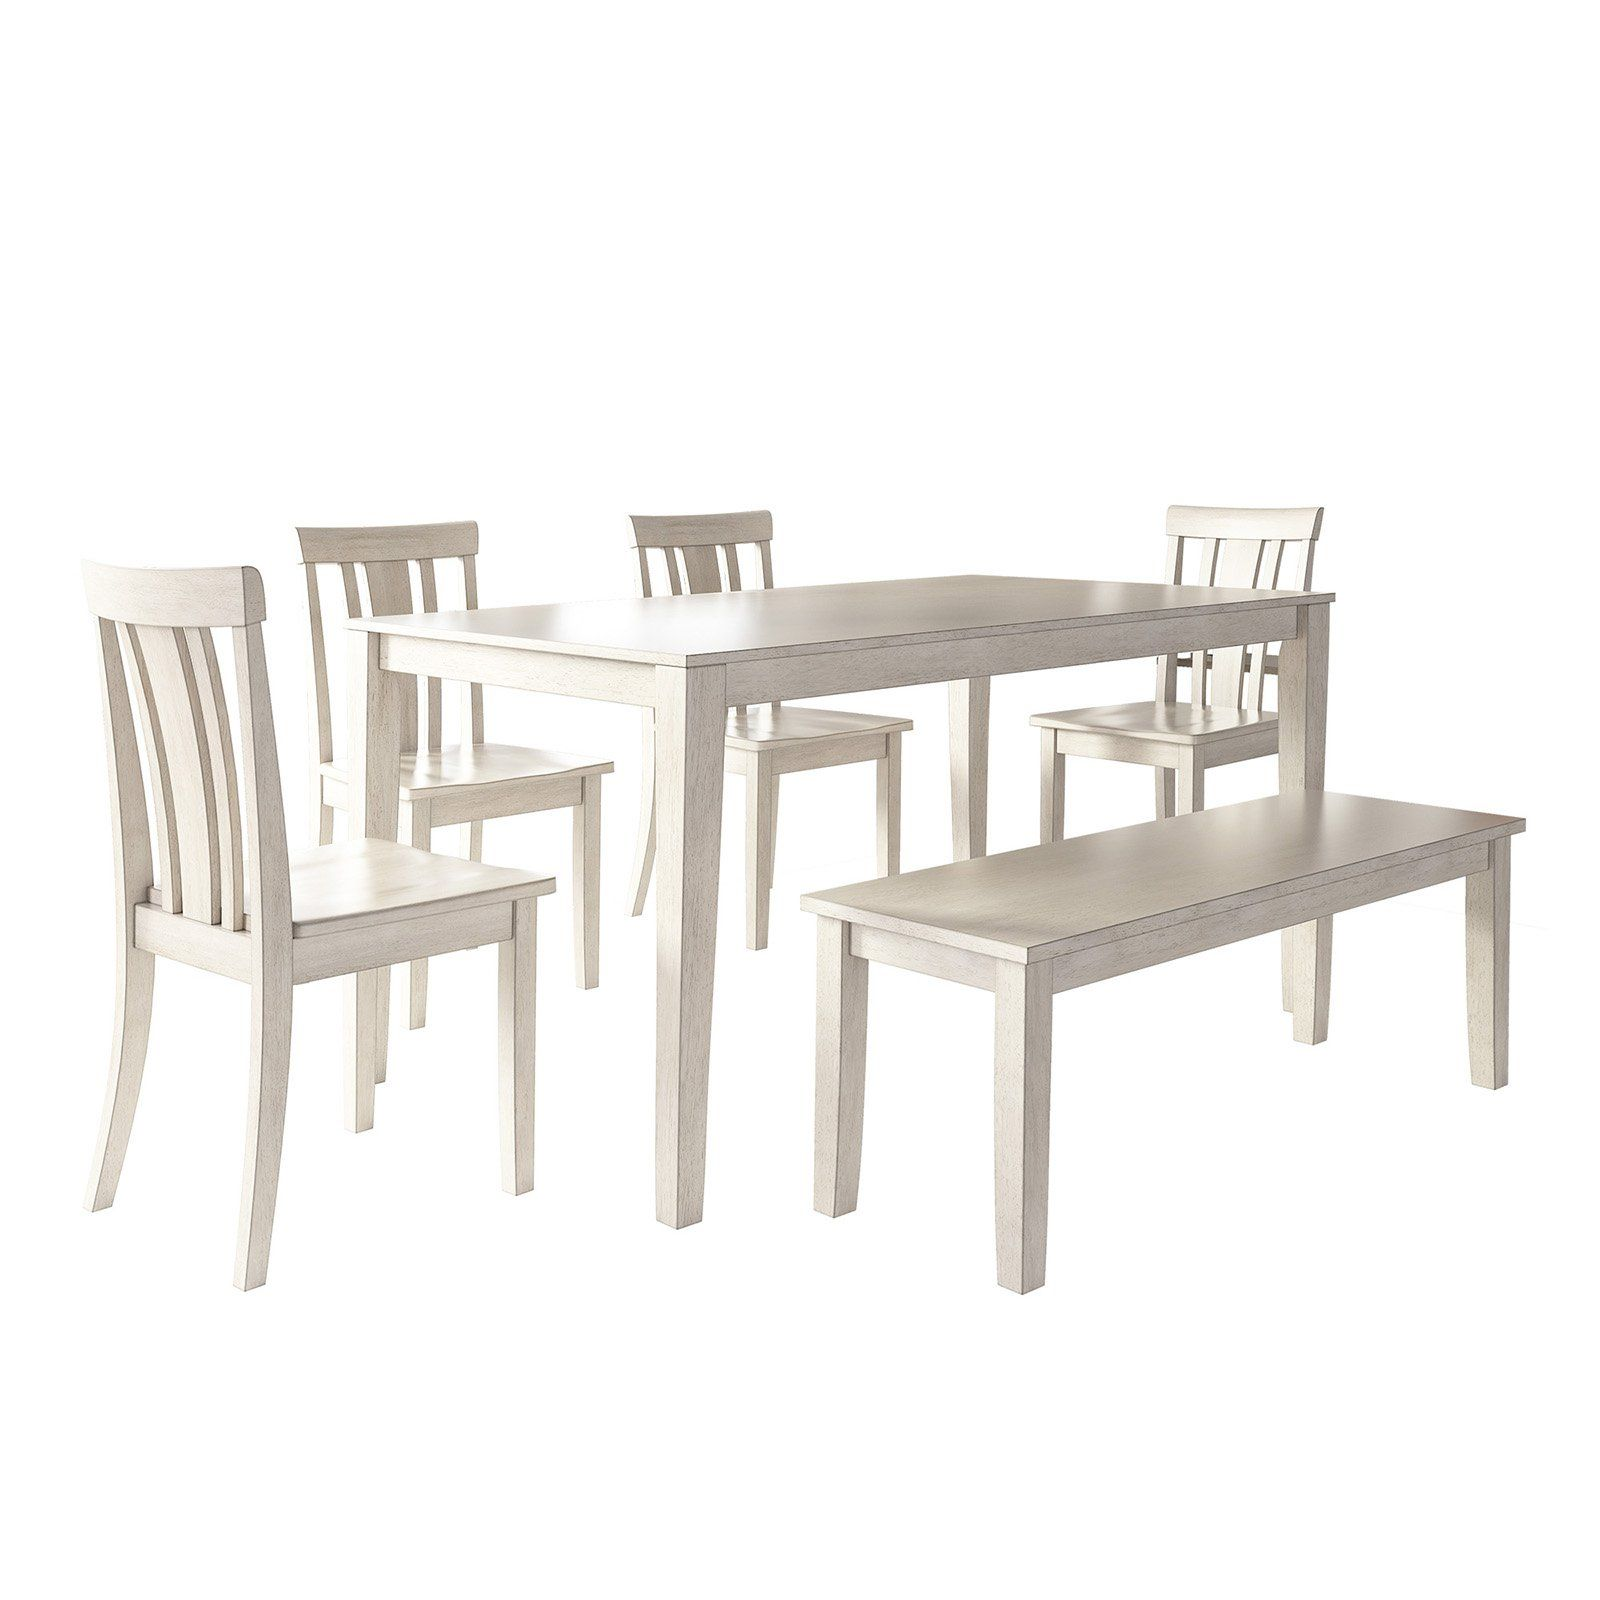 Admirable Weston Home Lexington 6 Piece Dining Set With Bench And Slat Beatyapartments Chair Design Images Beatyapartmentscom